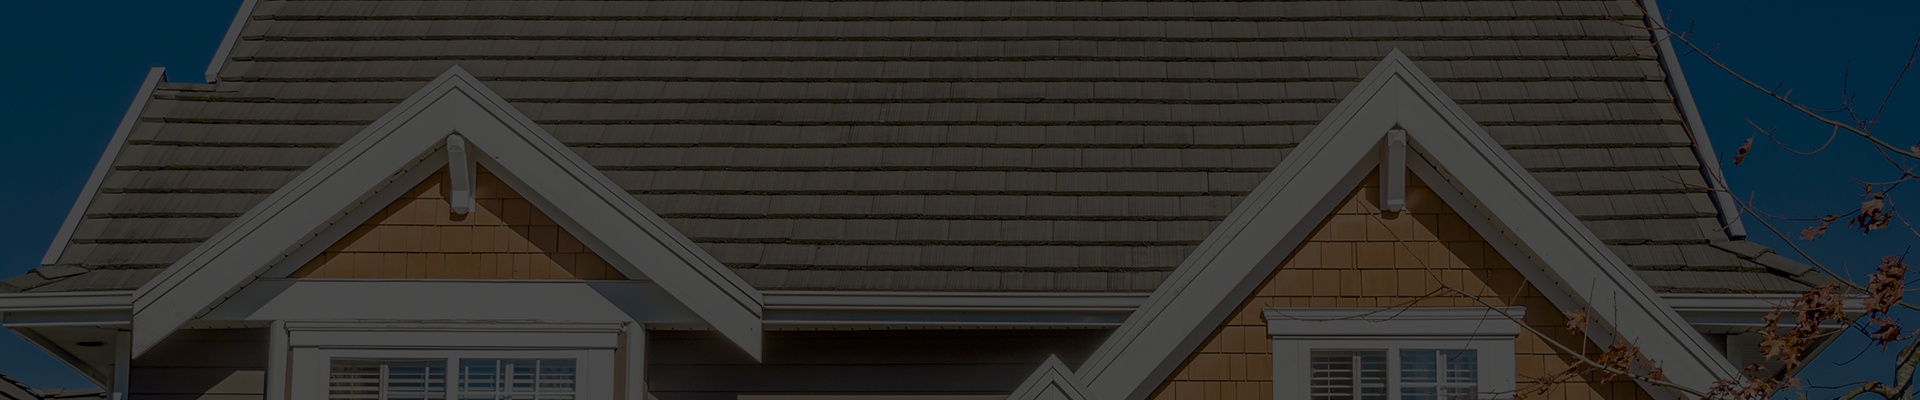 Roofing_leads_4.png